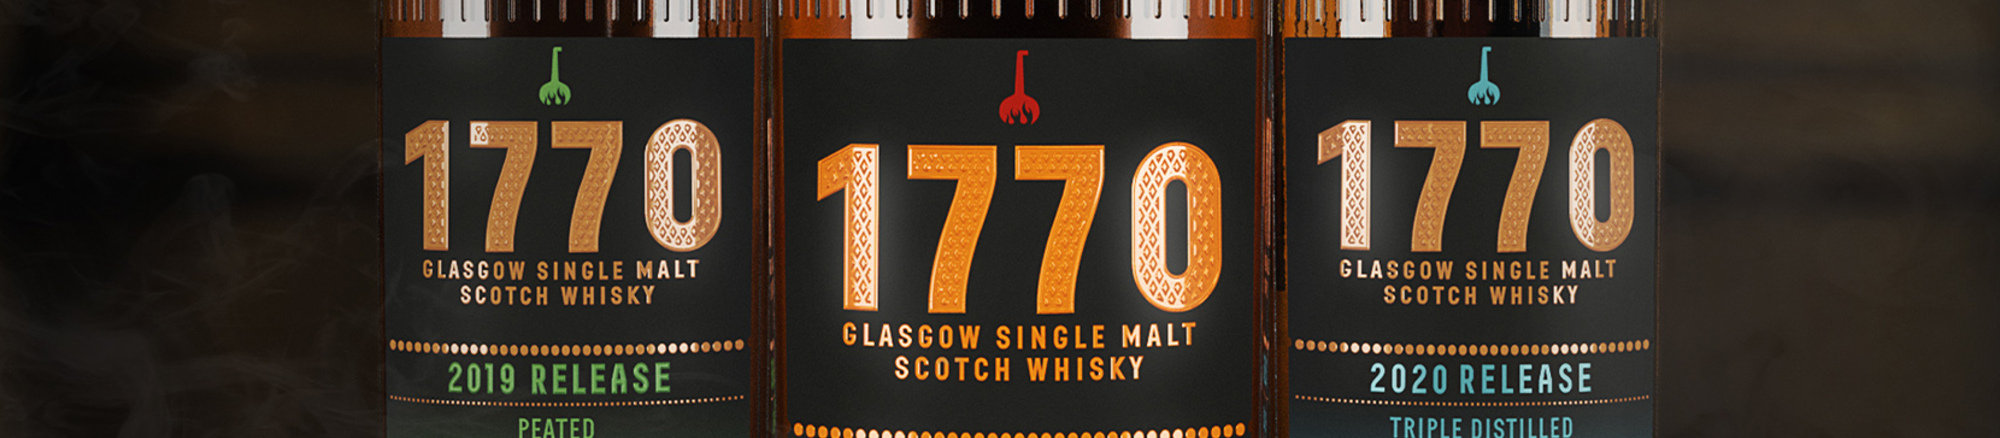 Glasgow 1770 Single Malt Whisky